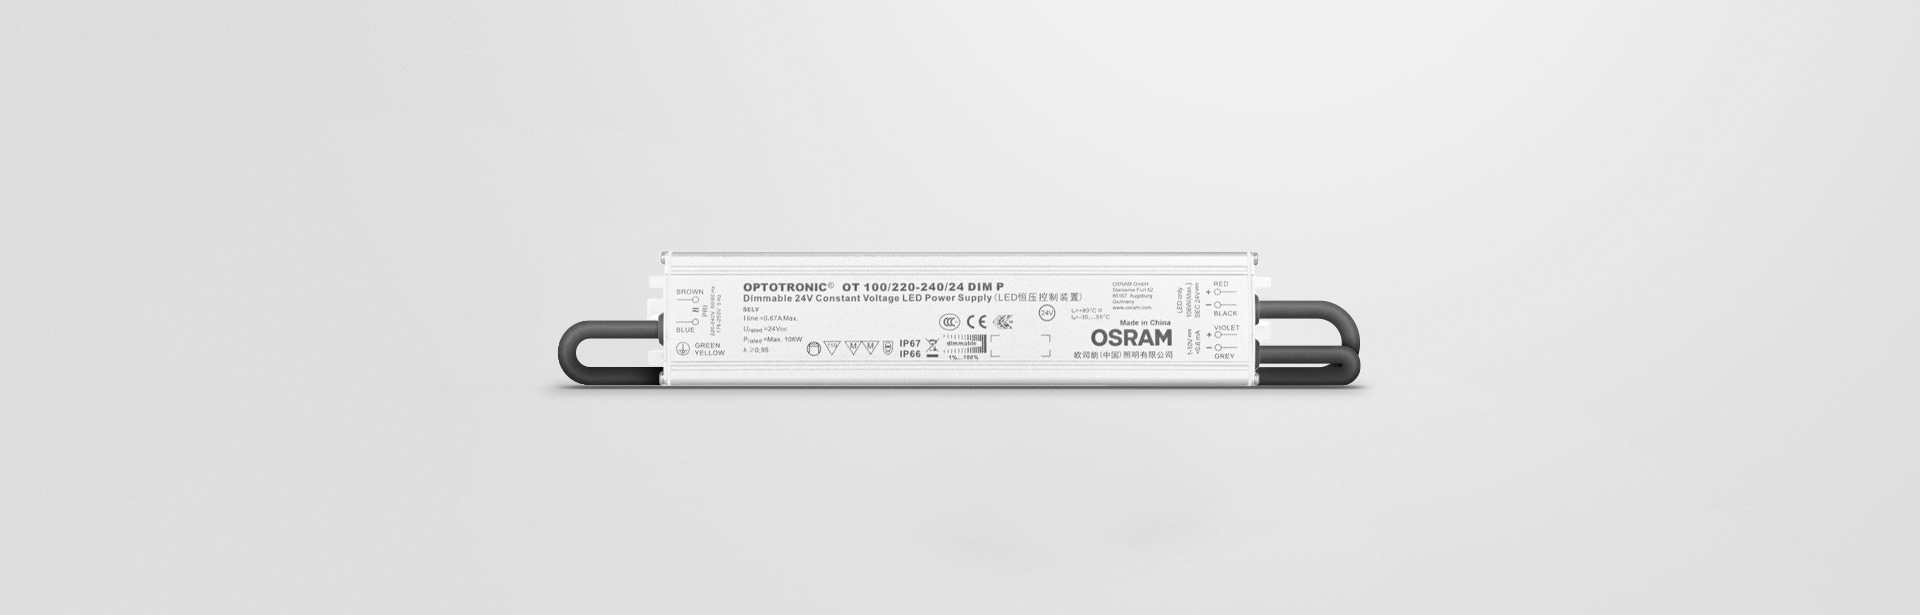 Large range of products from 20 W to 250 W Installation in very cold and hot environments Very stable output power High electronical reversible short-circuit, overload, overtemperature protection